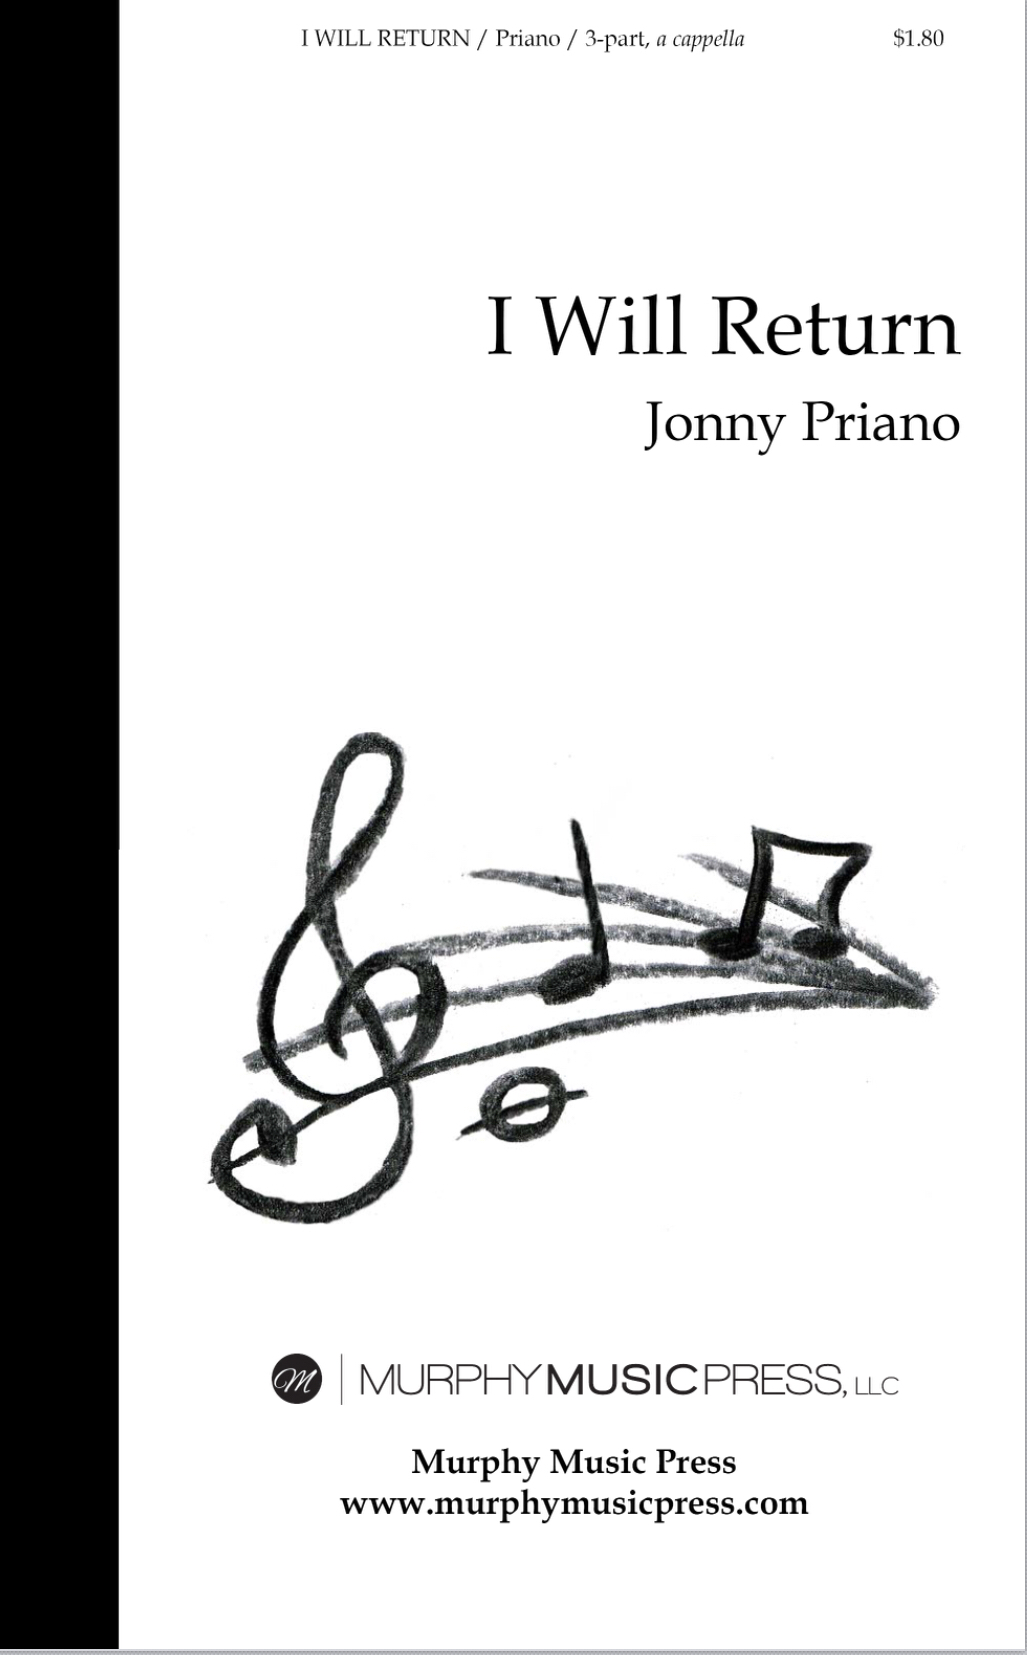 I Will Return (3 Part A Cappella) by Jonny Priano